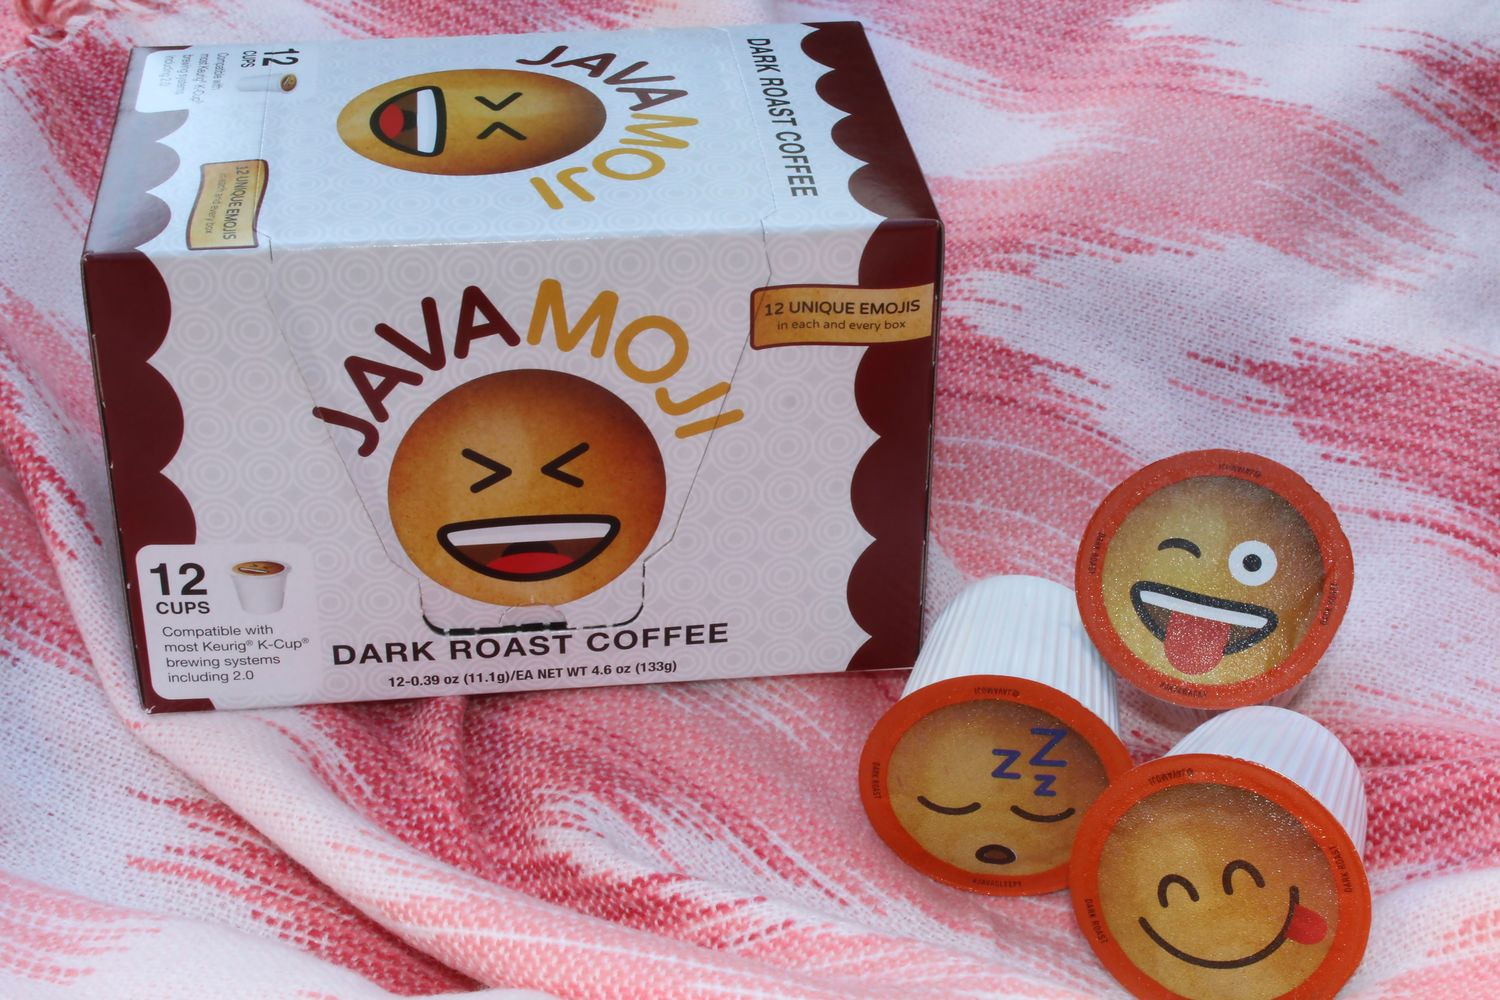 Bringing Emojis From Your Phone to Your Coffee with JavaMoji